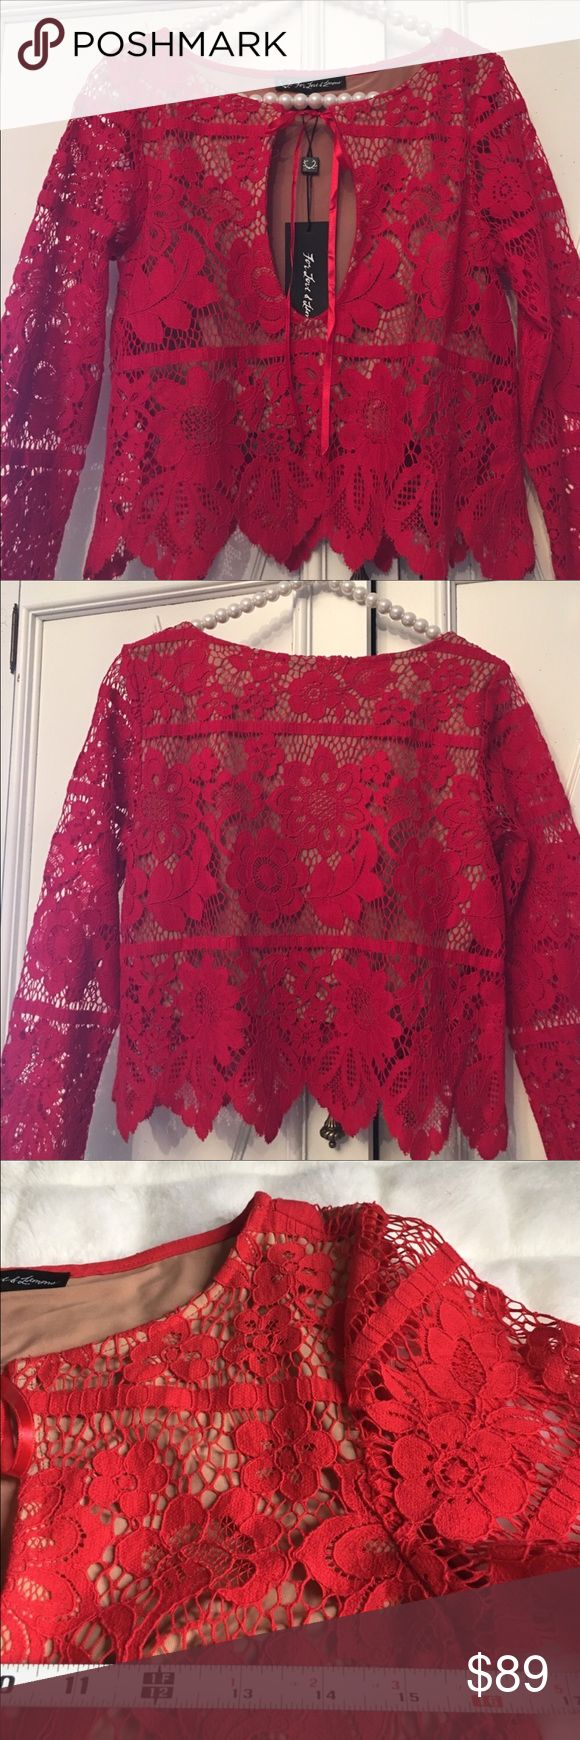 FOR LOVE & LEMONS GIANNA TOP FOR LOVE & LEMONS STUNNING RED LACE TOP ⚜️built in nude lining halfway at bodice ⚜️keyhole neckline⚜️NWT For Love and Lemons Tops